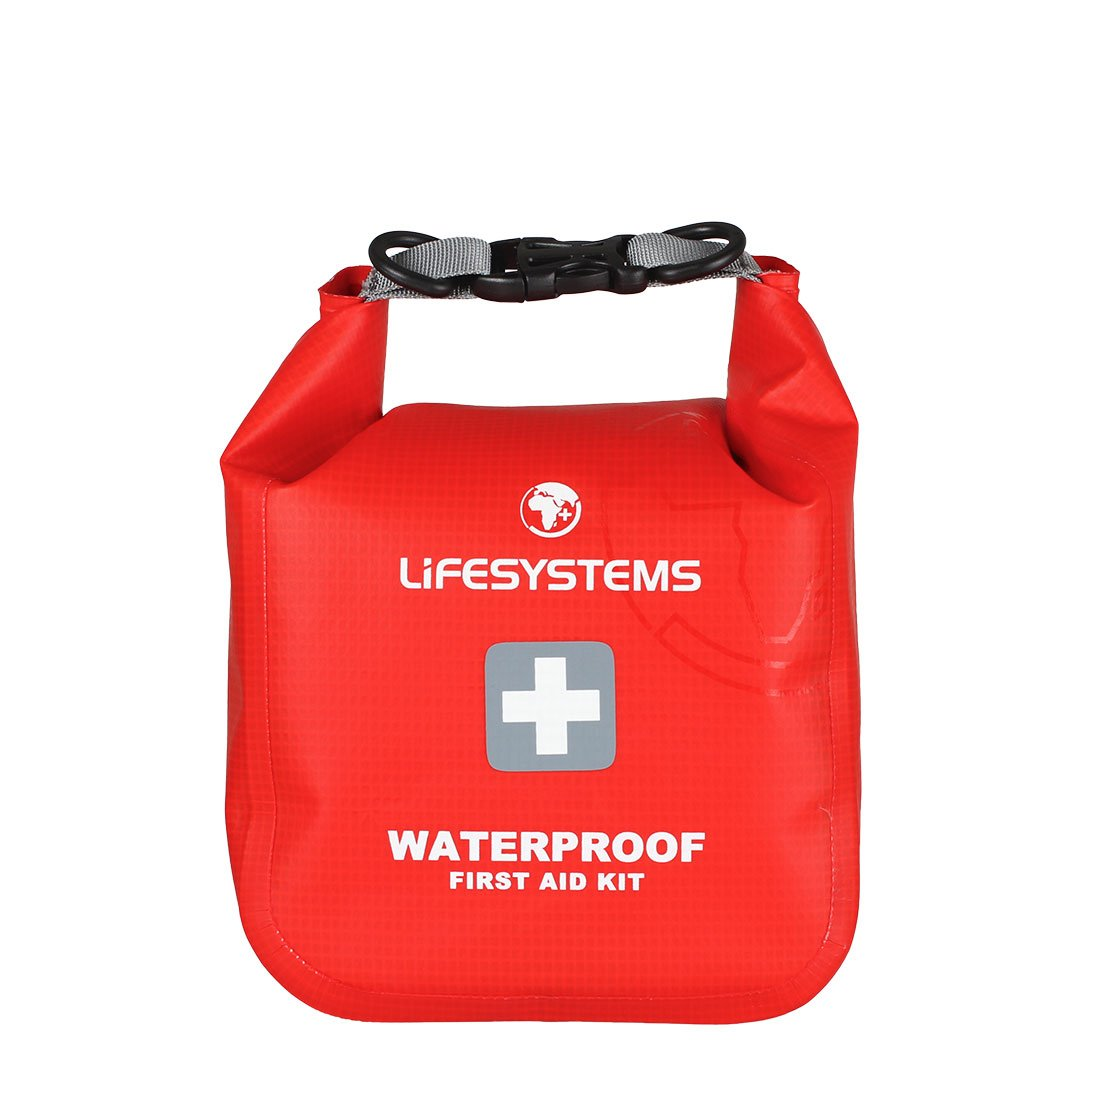 Waterproof First Aid Kit First Aid Boxes Lifesystems